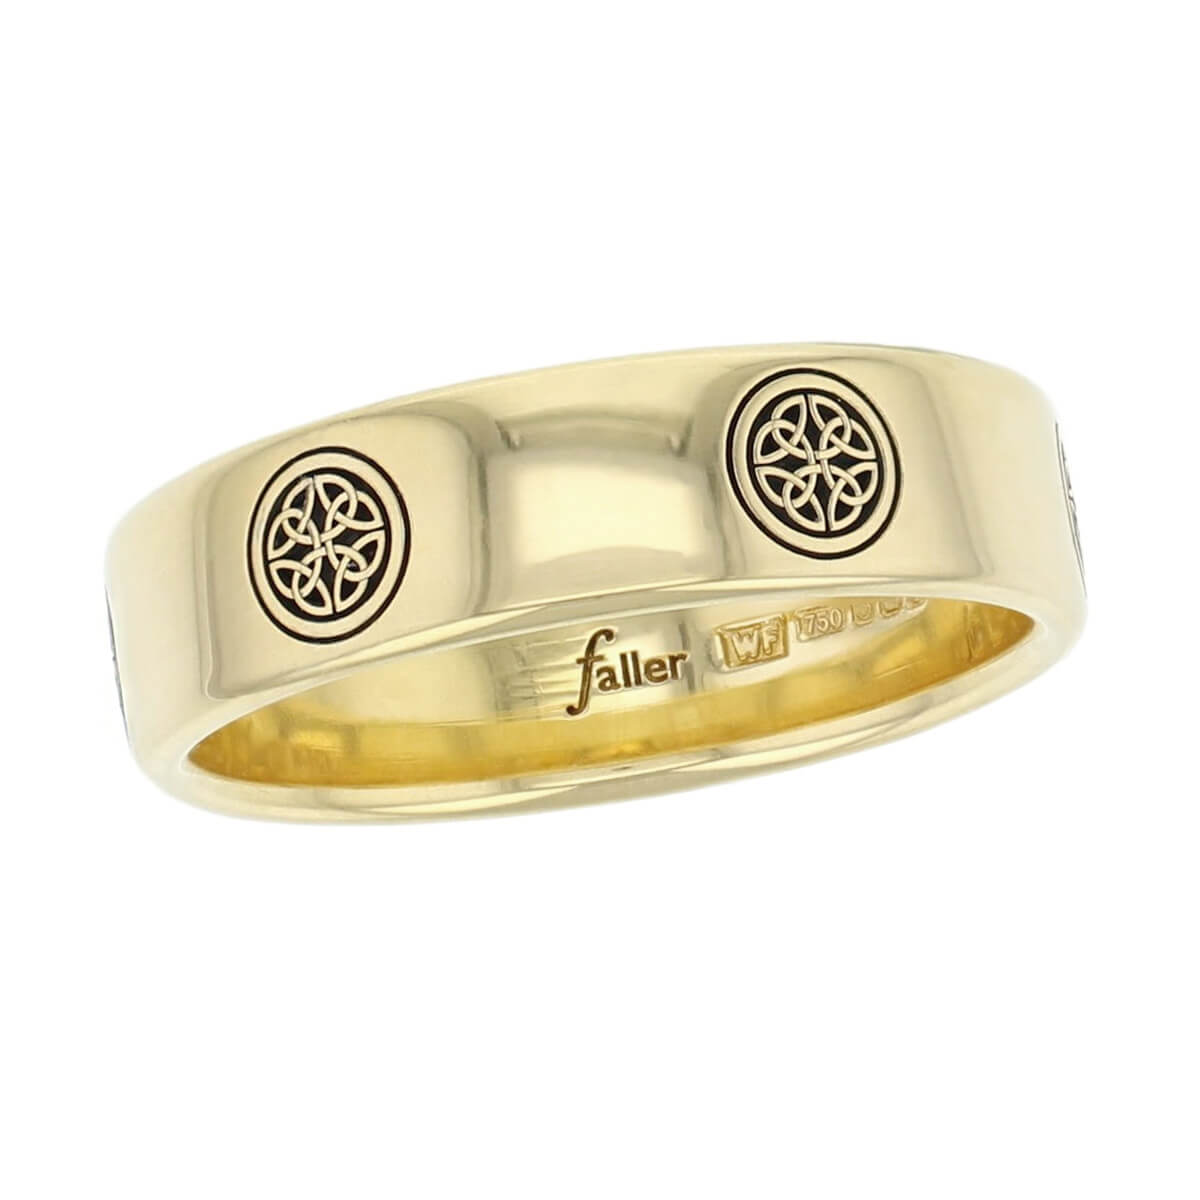 18ct yellow gold west cross, clonca pattern wedding ring, men's, gents, Irish, celtic plait, interlace, weave, , St. Boden, made by Faller